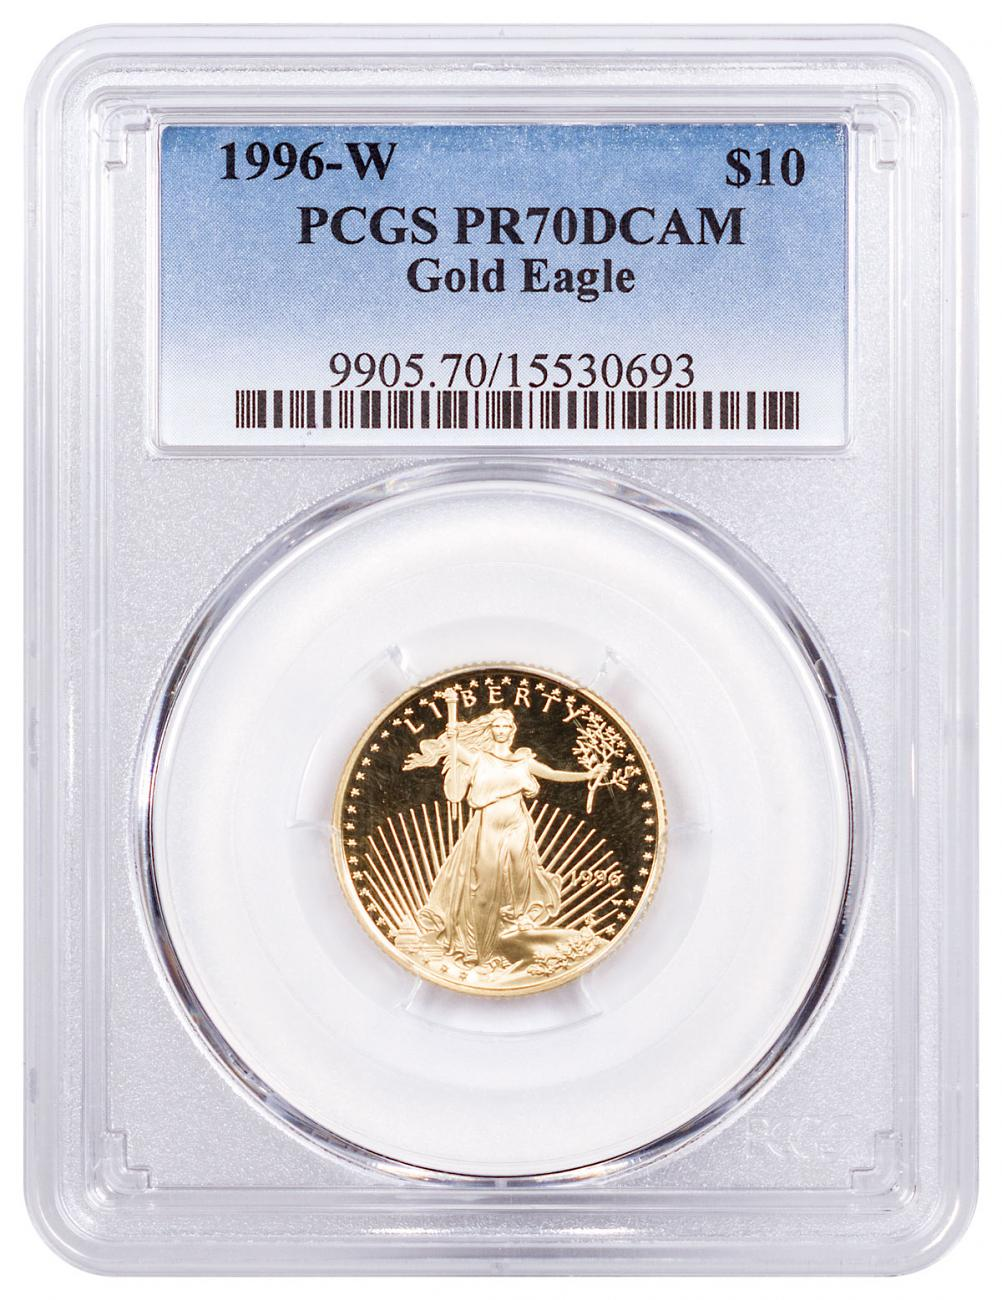 1996-W 1/4 oz Gold American Eagle Proof $10 PCGS PR70 DCAM